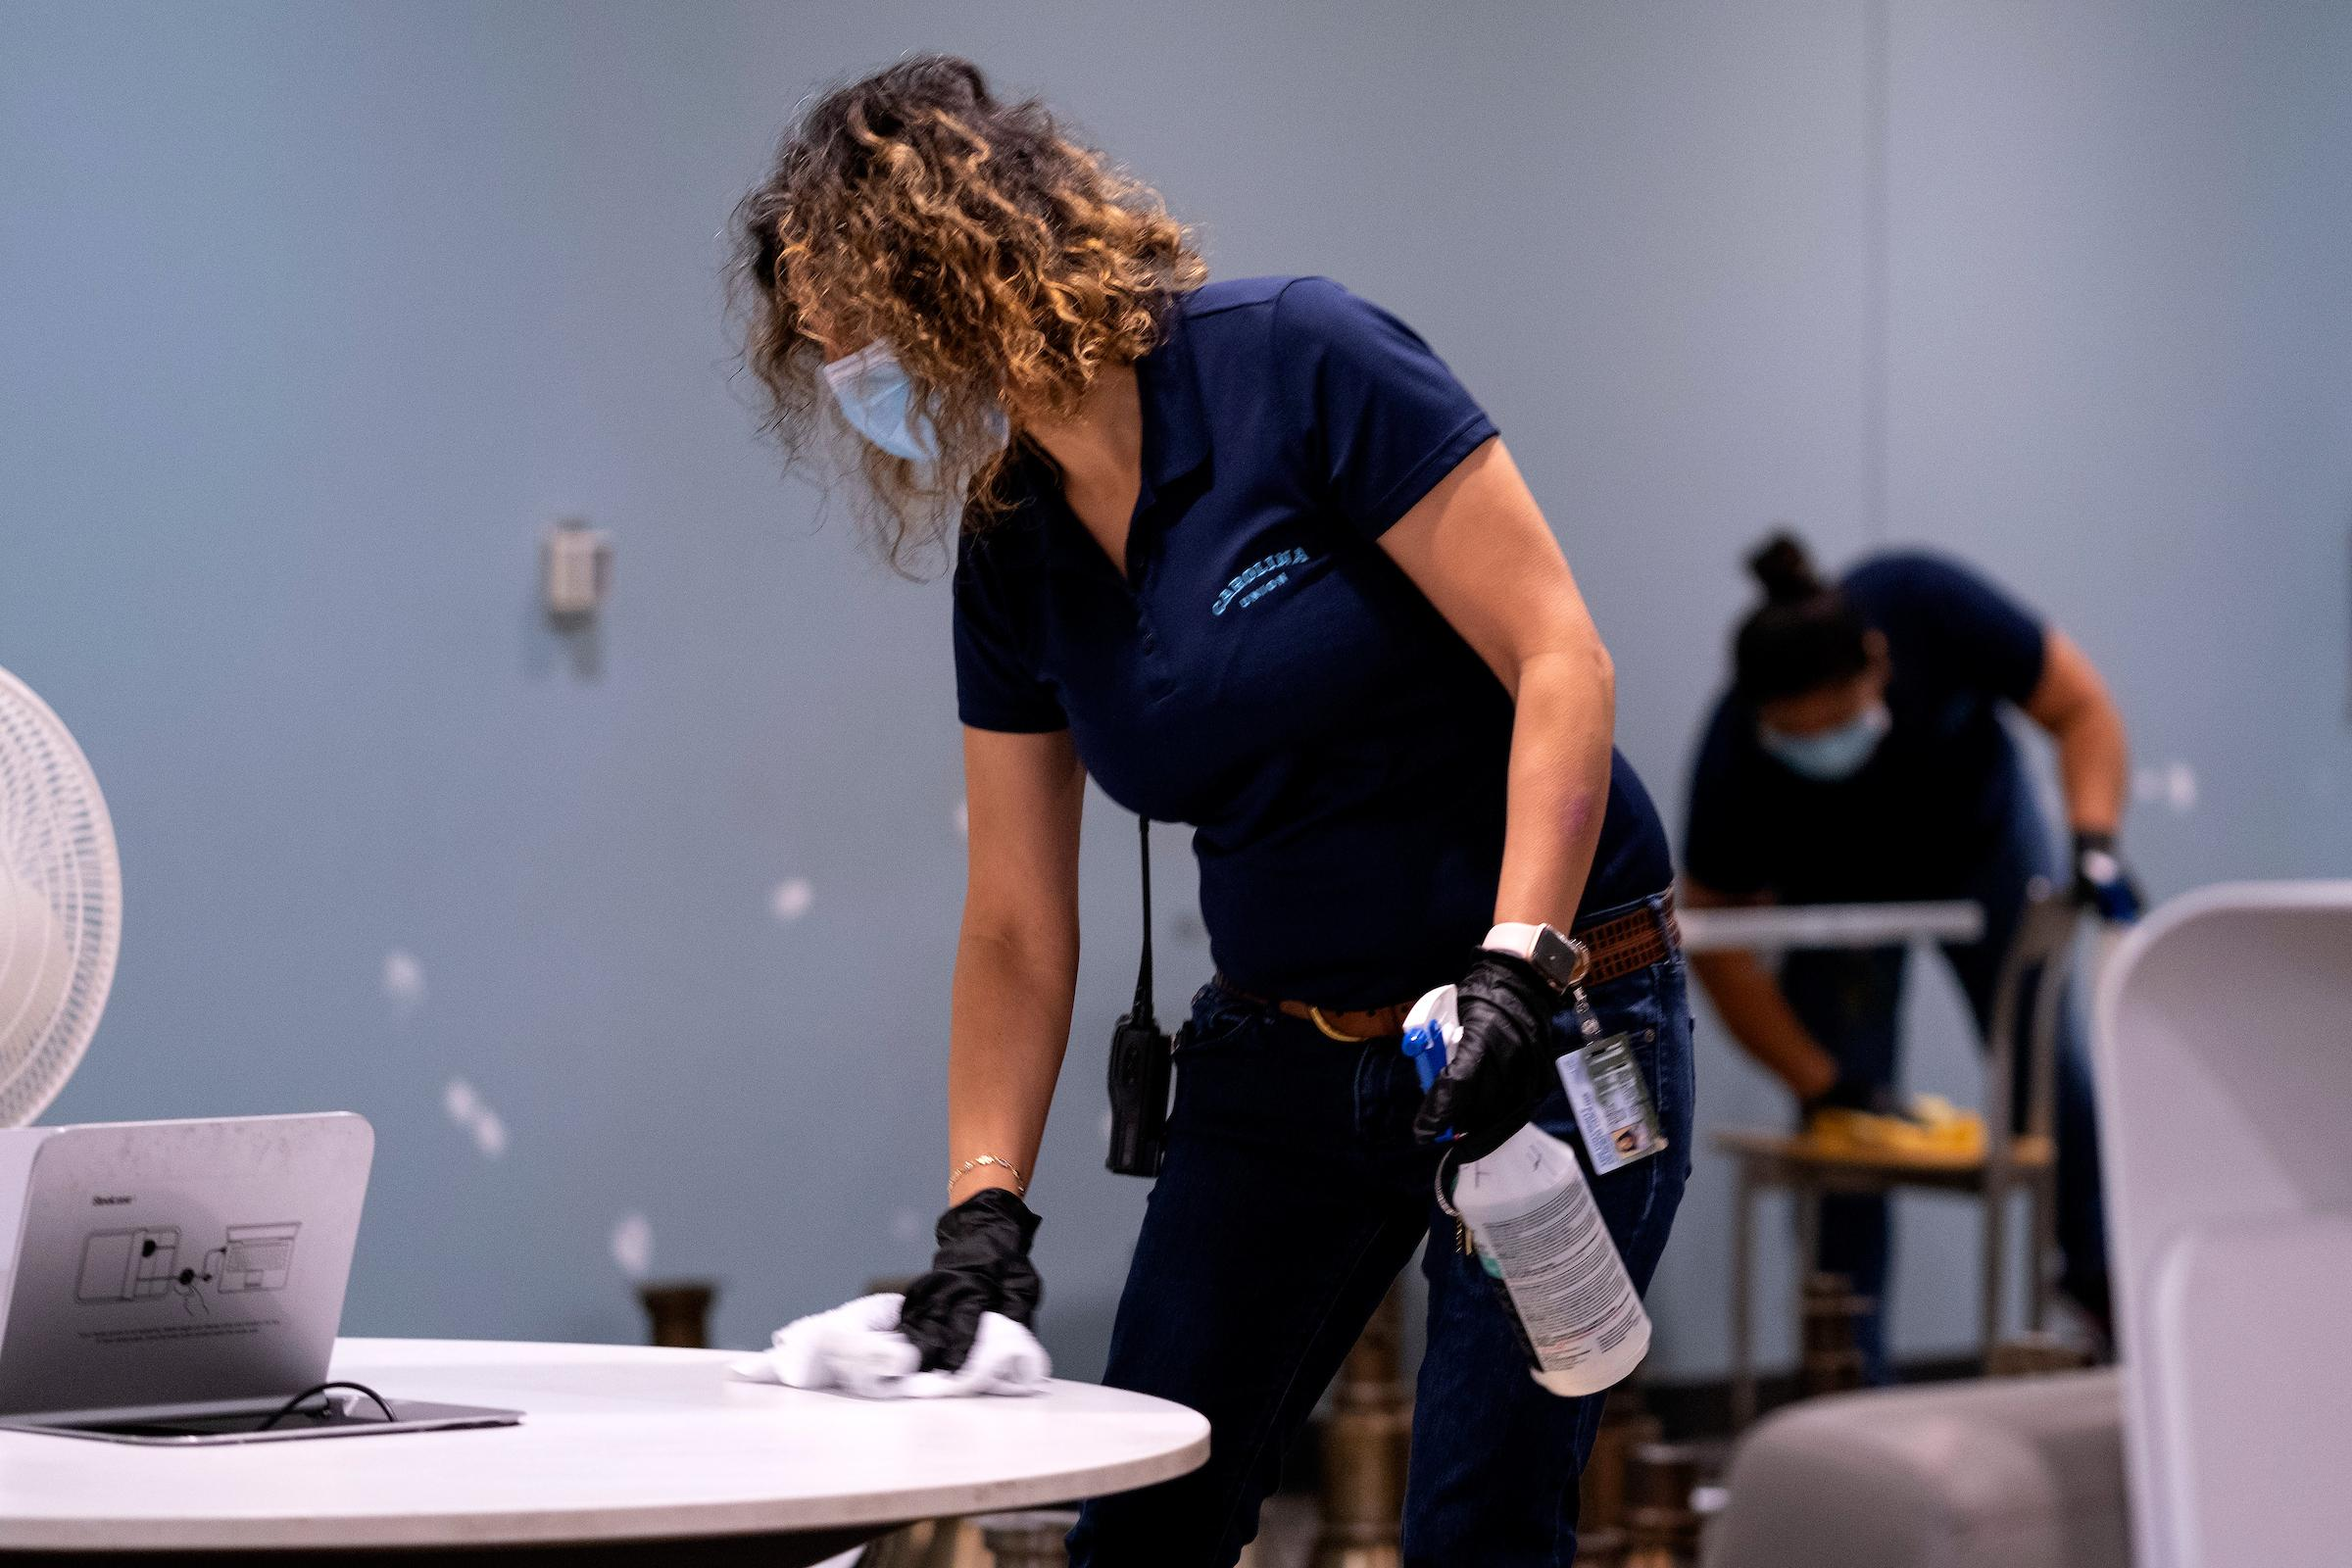 Housekeeping worker disinfecting table